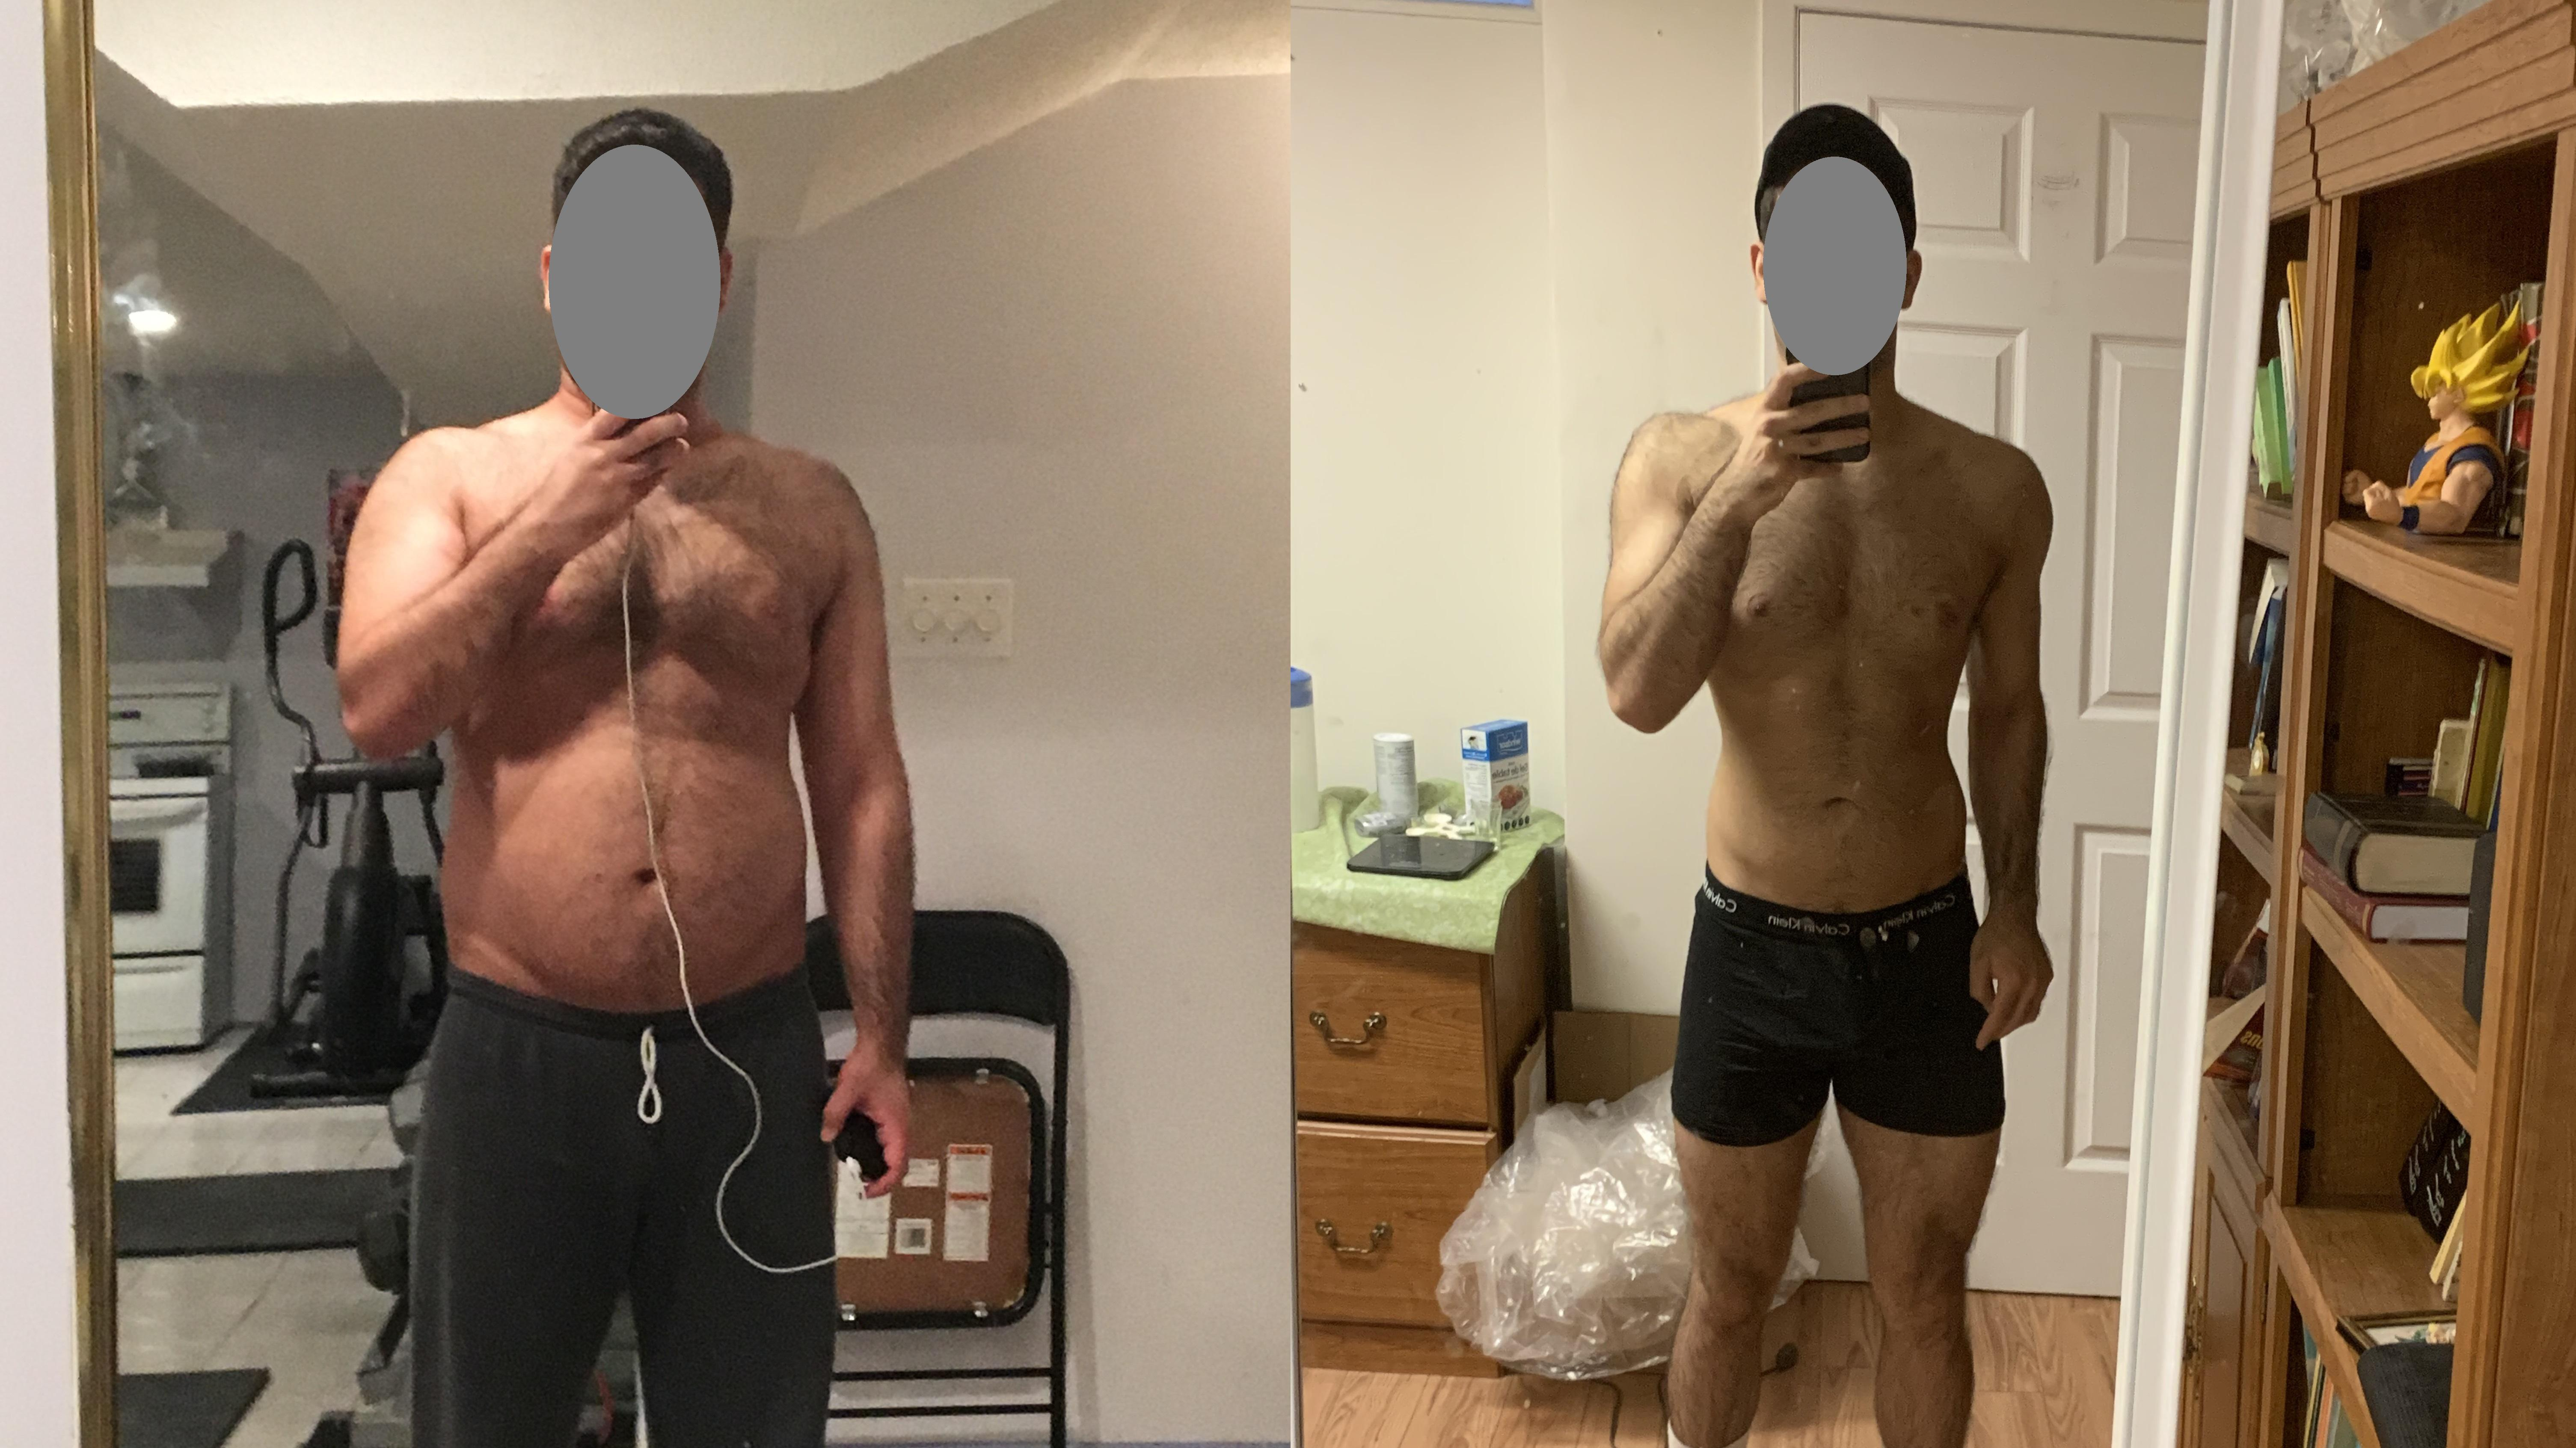 5 foot 10 Male 54 lbs Fat Loss Before and After 214 lbs to 160 lbs